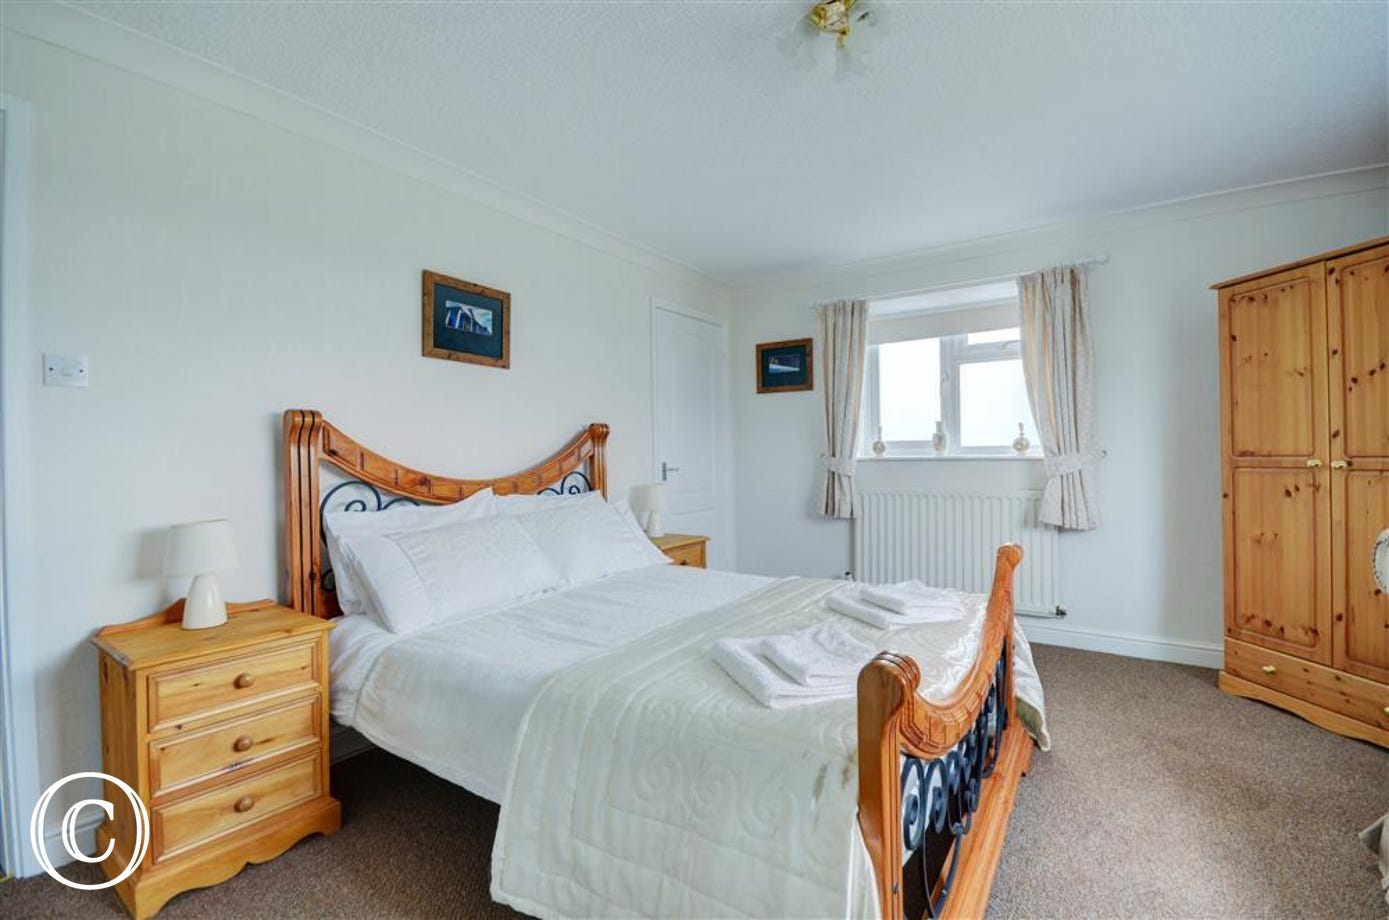 The main bedroom has a double bed and a chest of drawers.